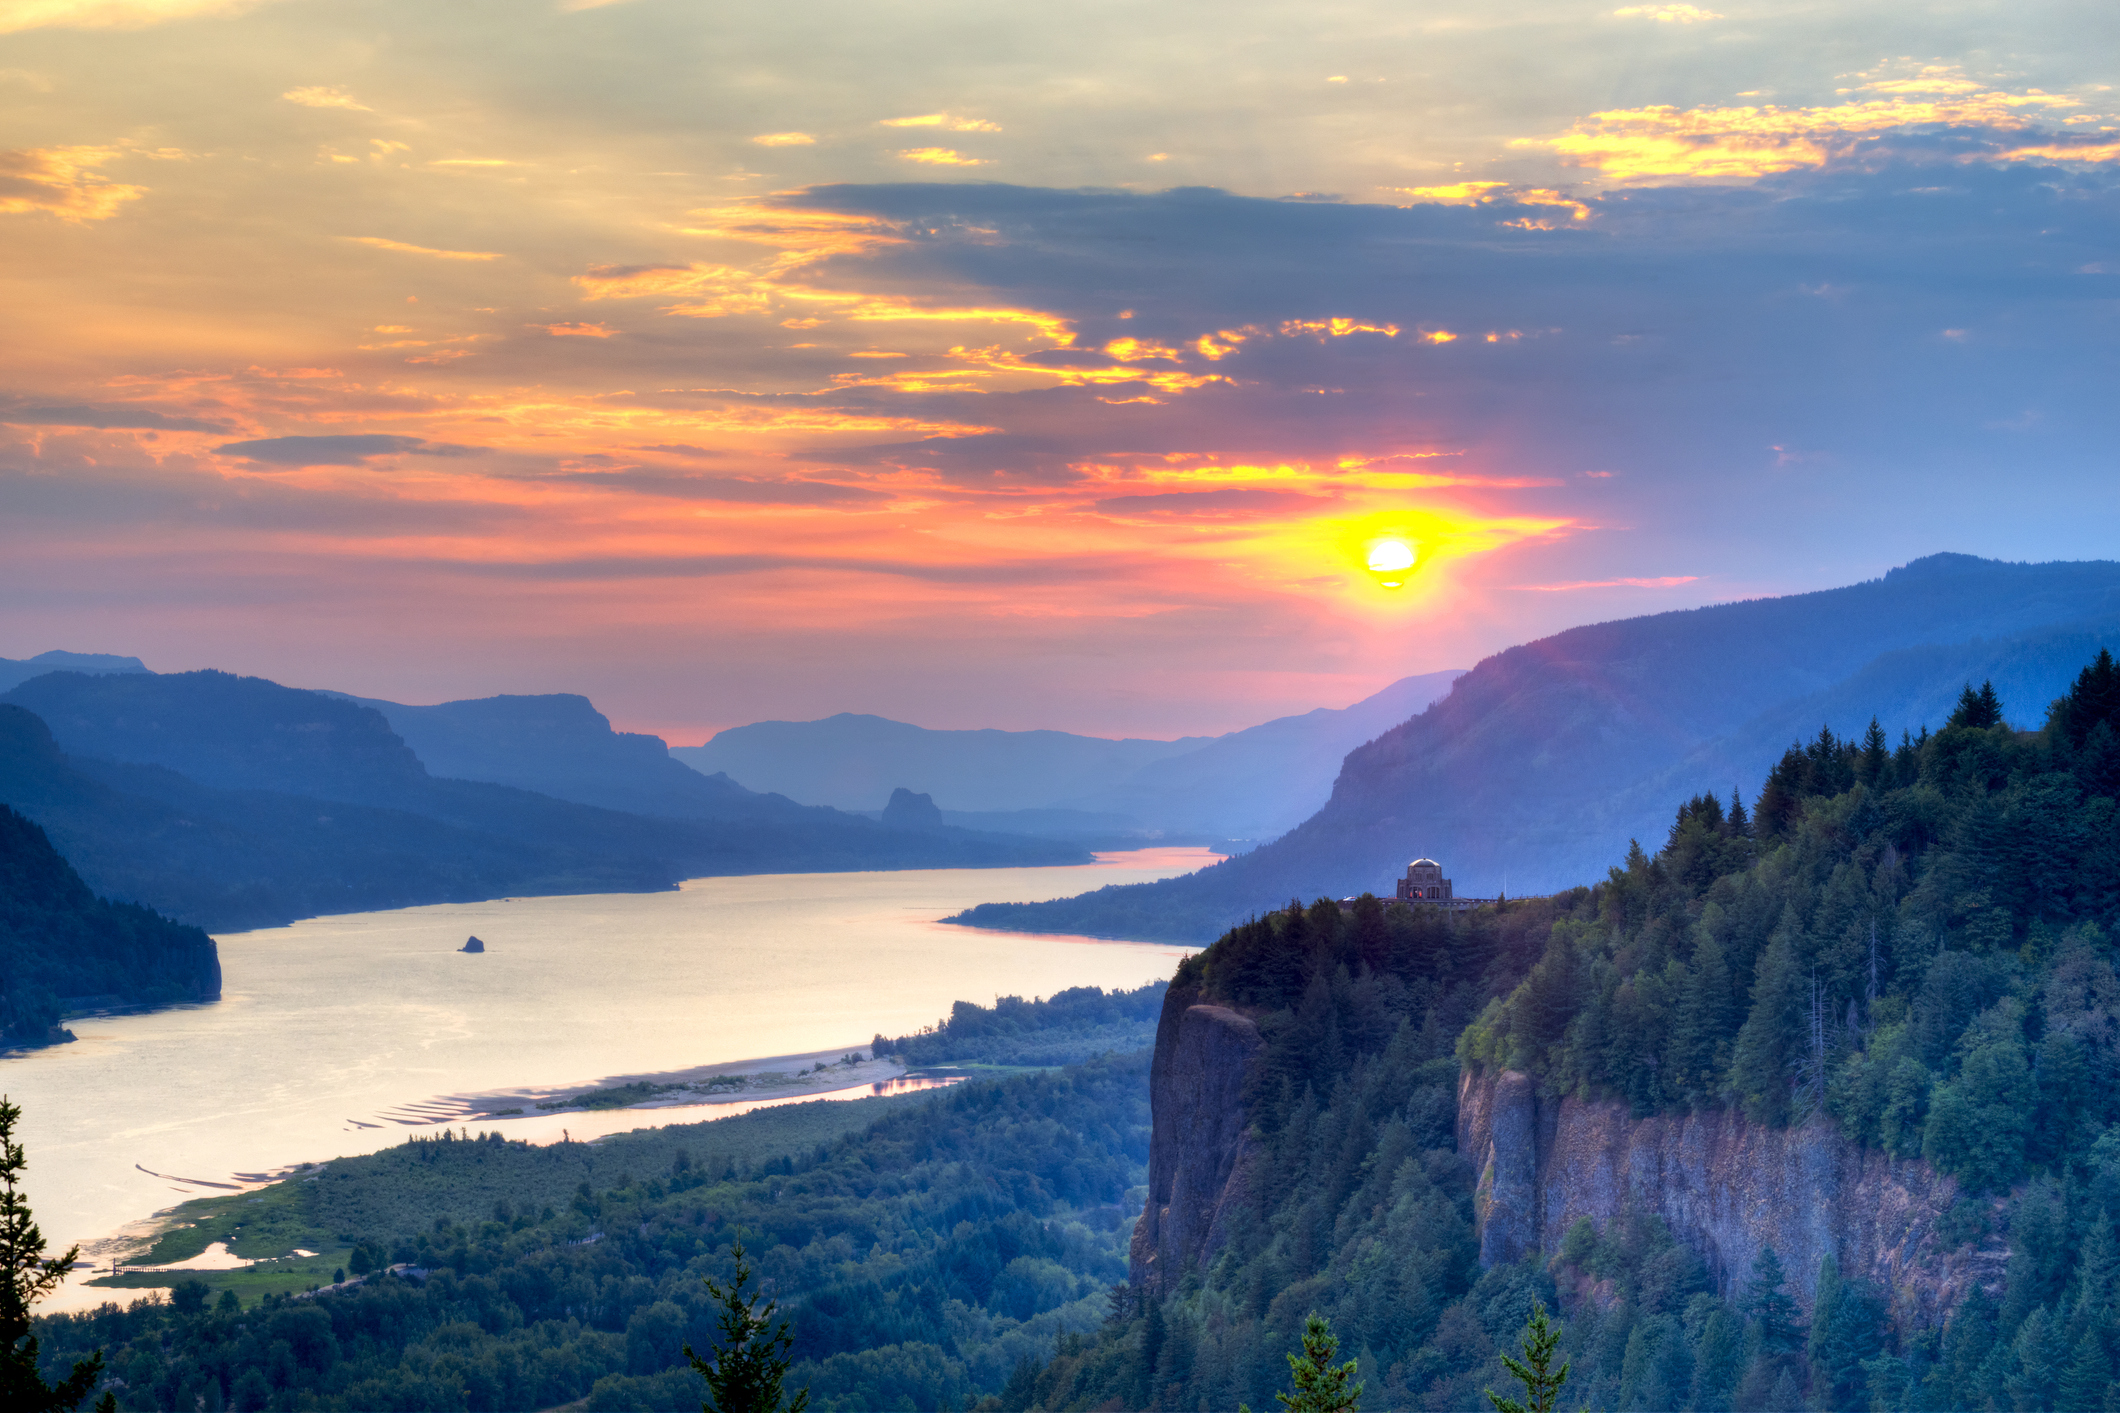 Sunset over a river lined with sheer rock cliffs and lush forests.